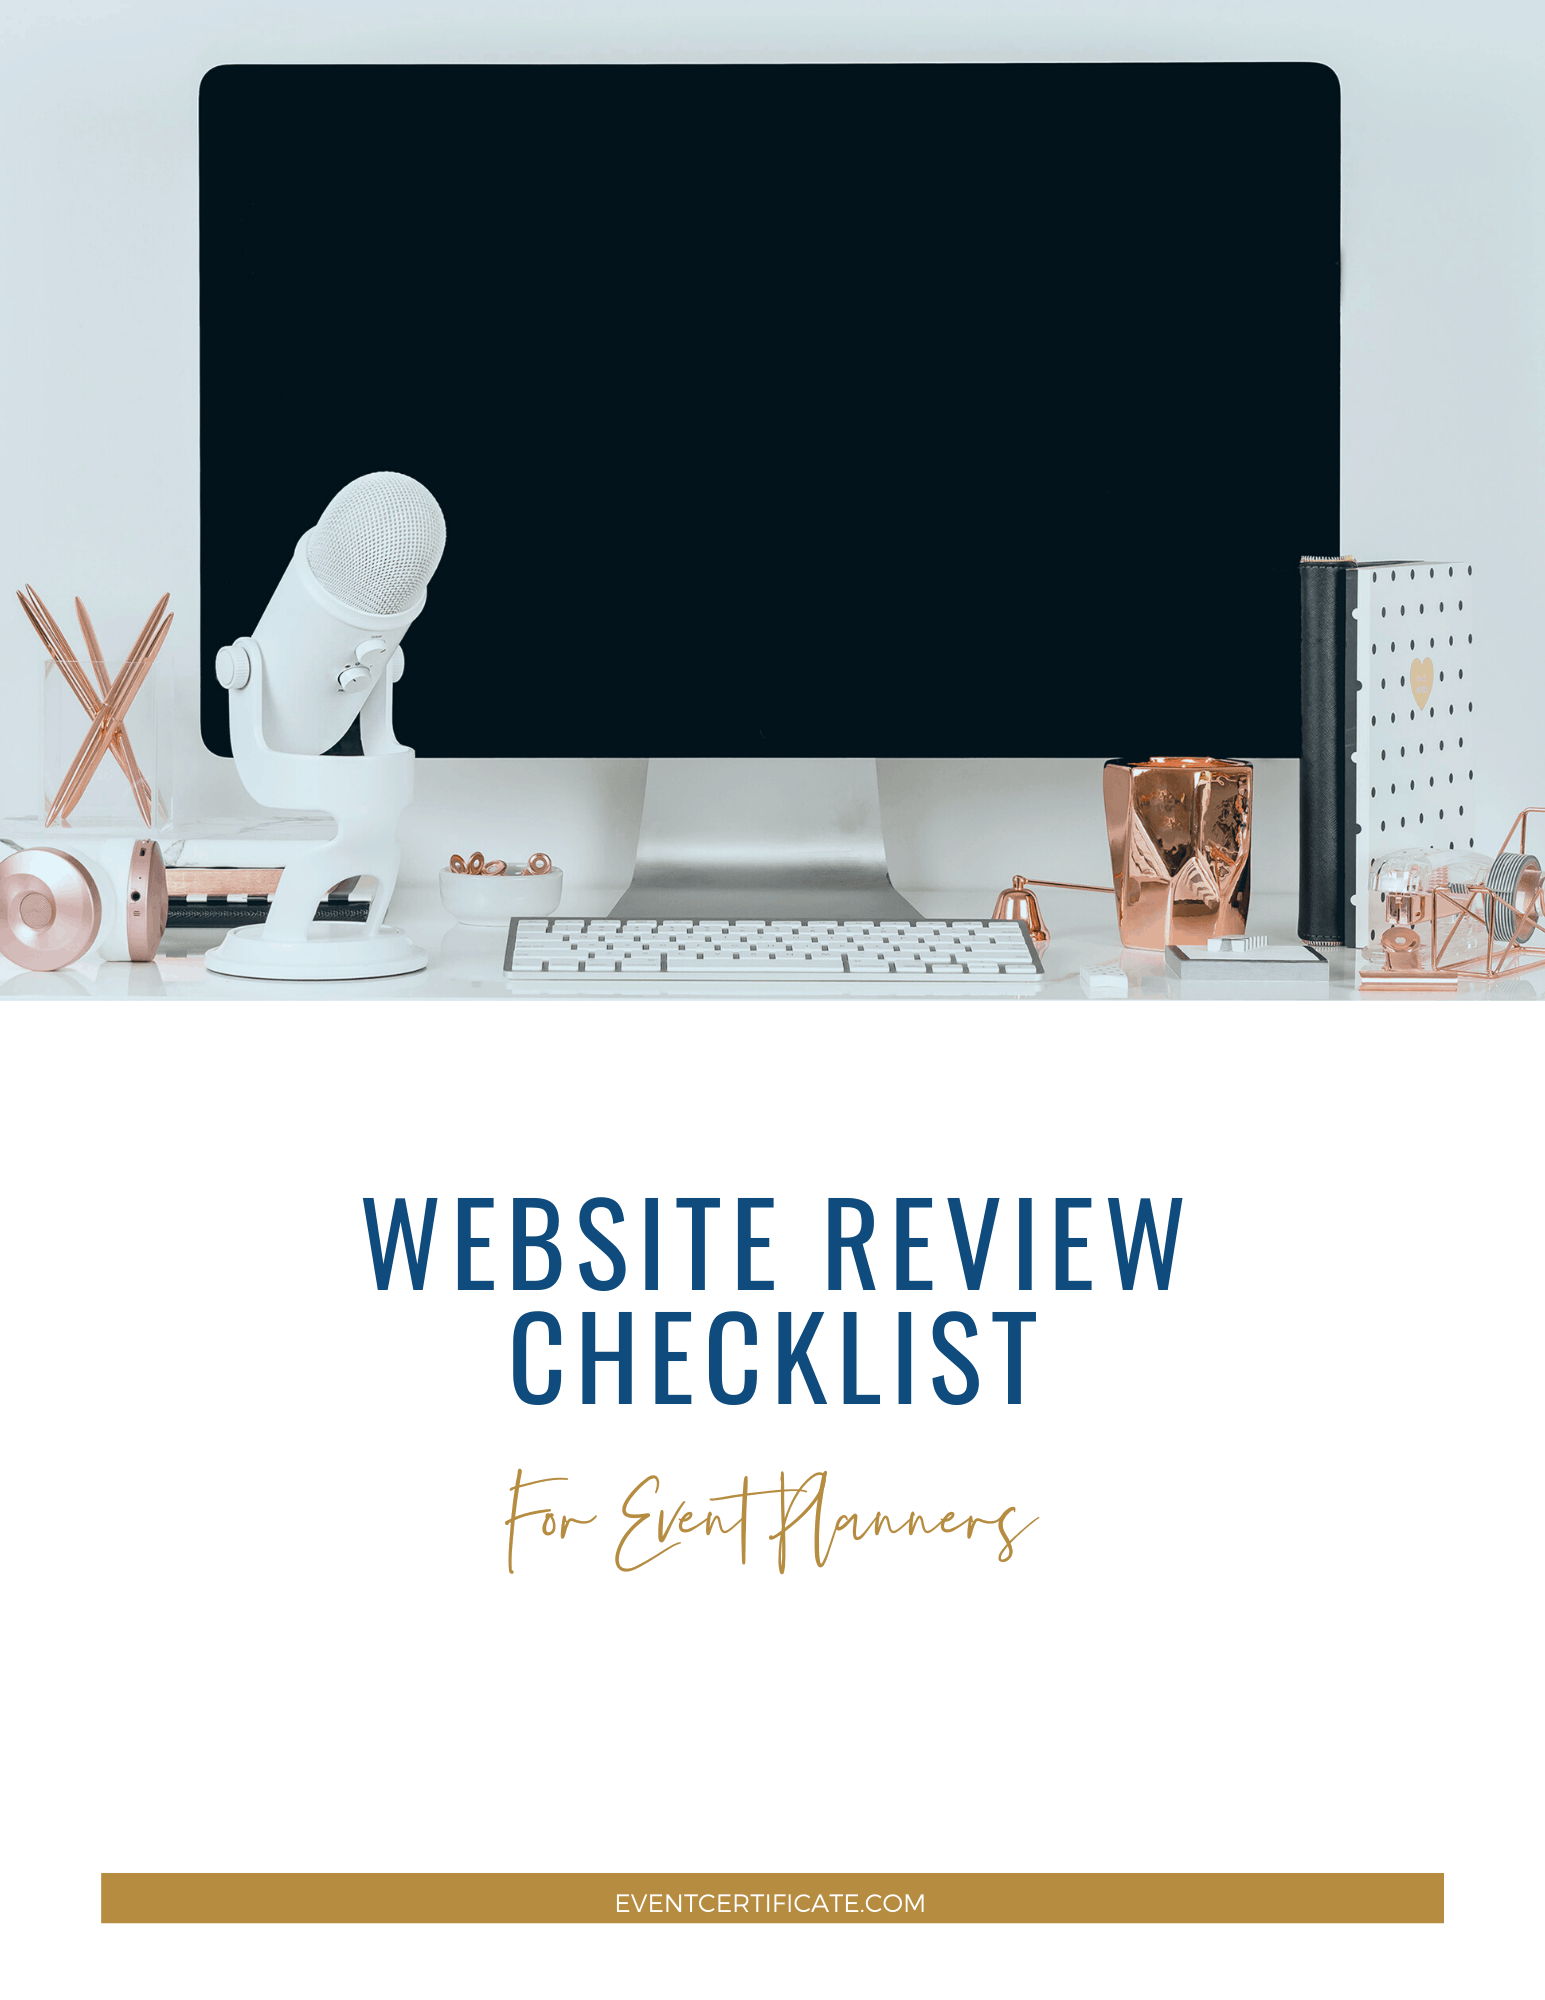 Website Review Checklist